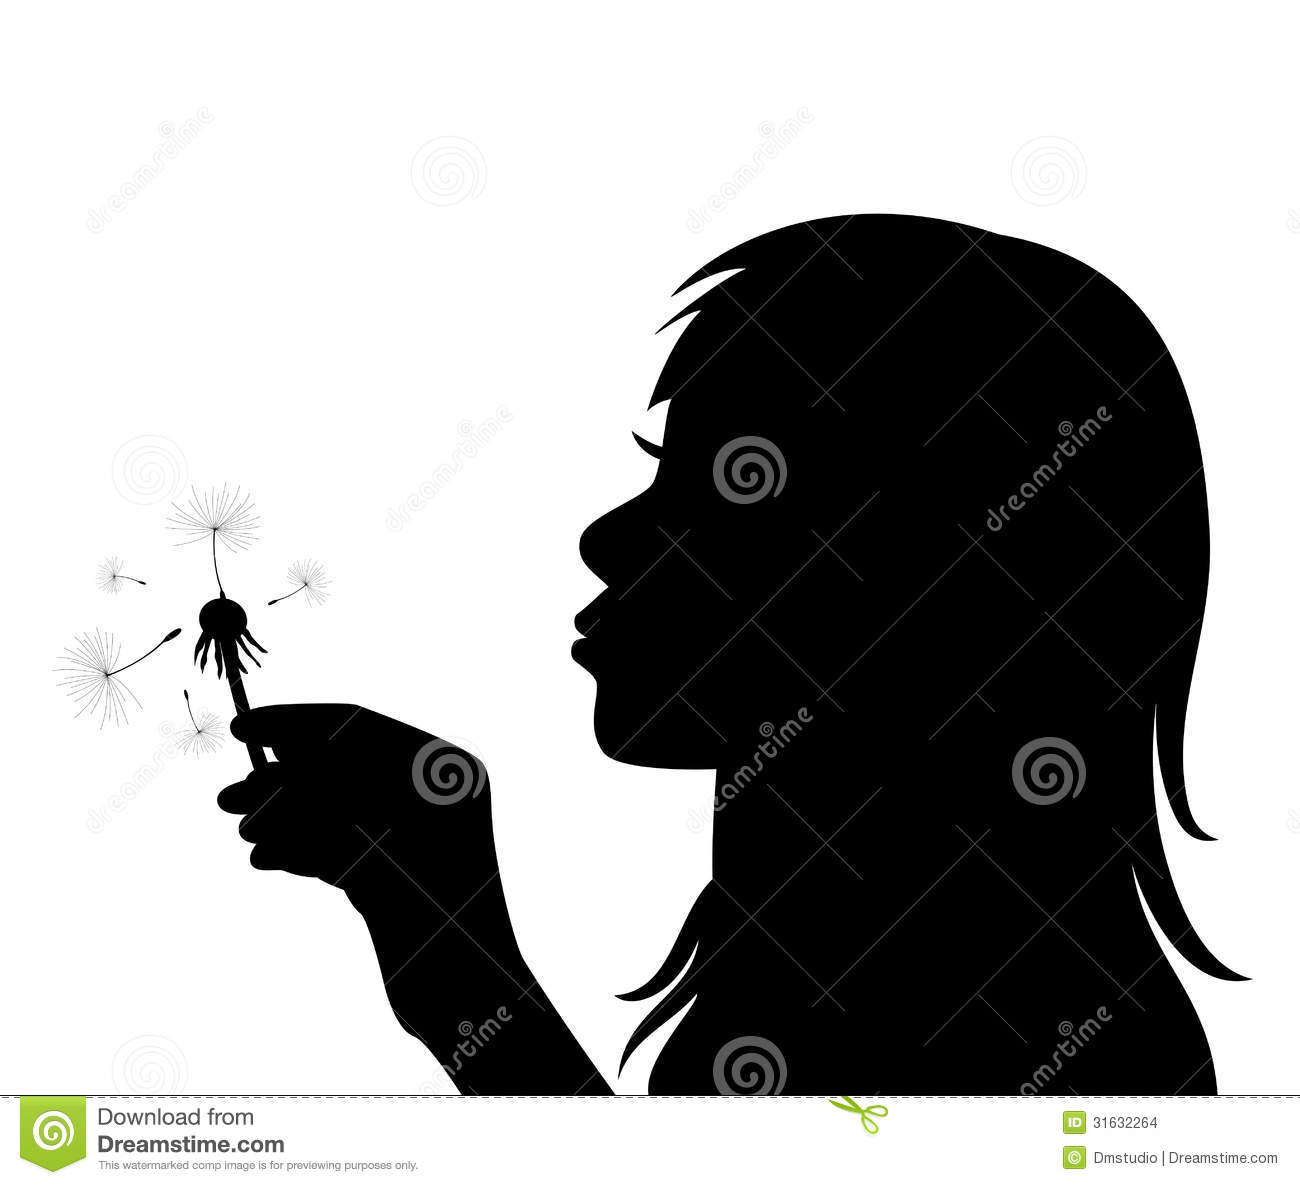 Woman Silhouette Profile Stock Photos And Images  123RF